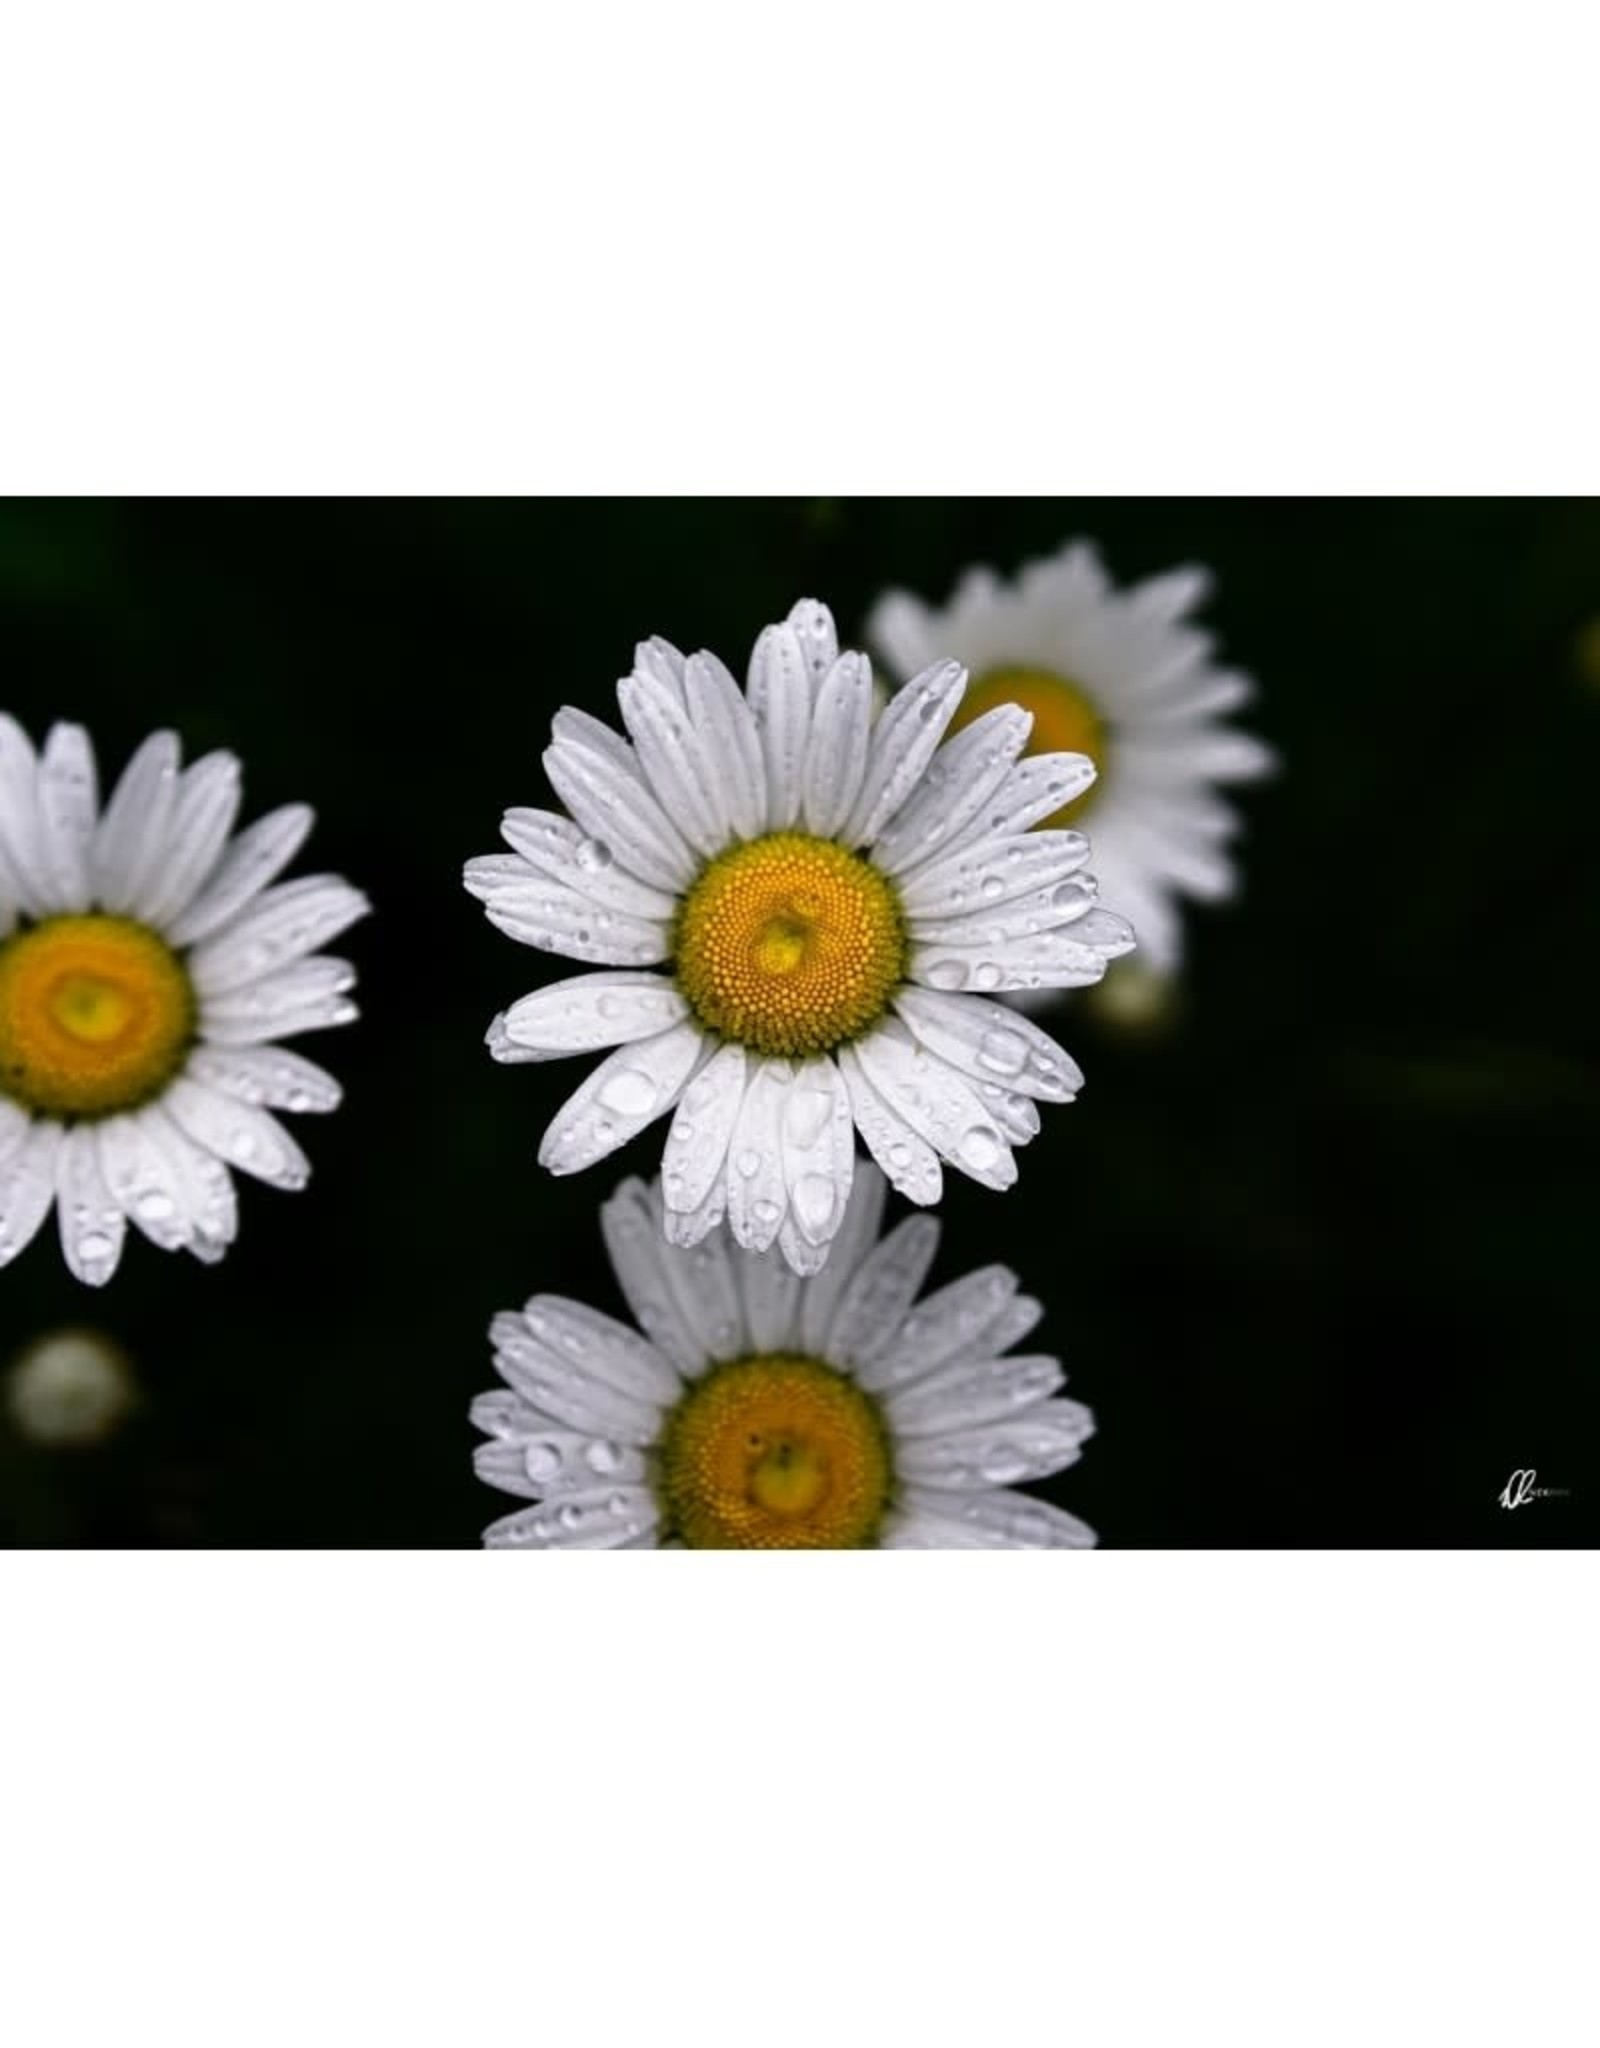 Nick Irwin Images Dripping Daisies